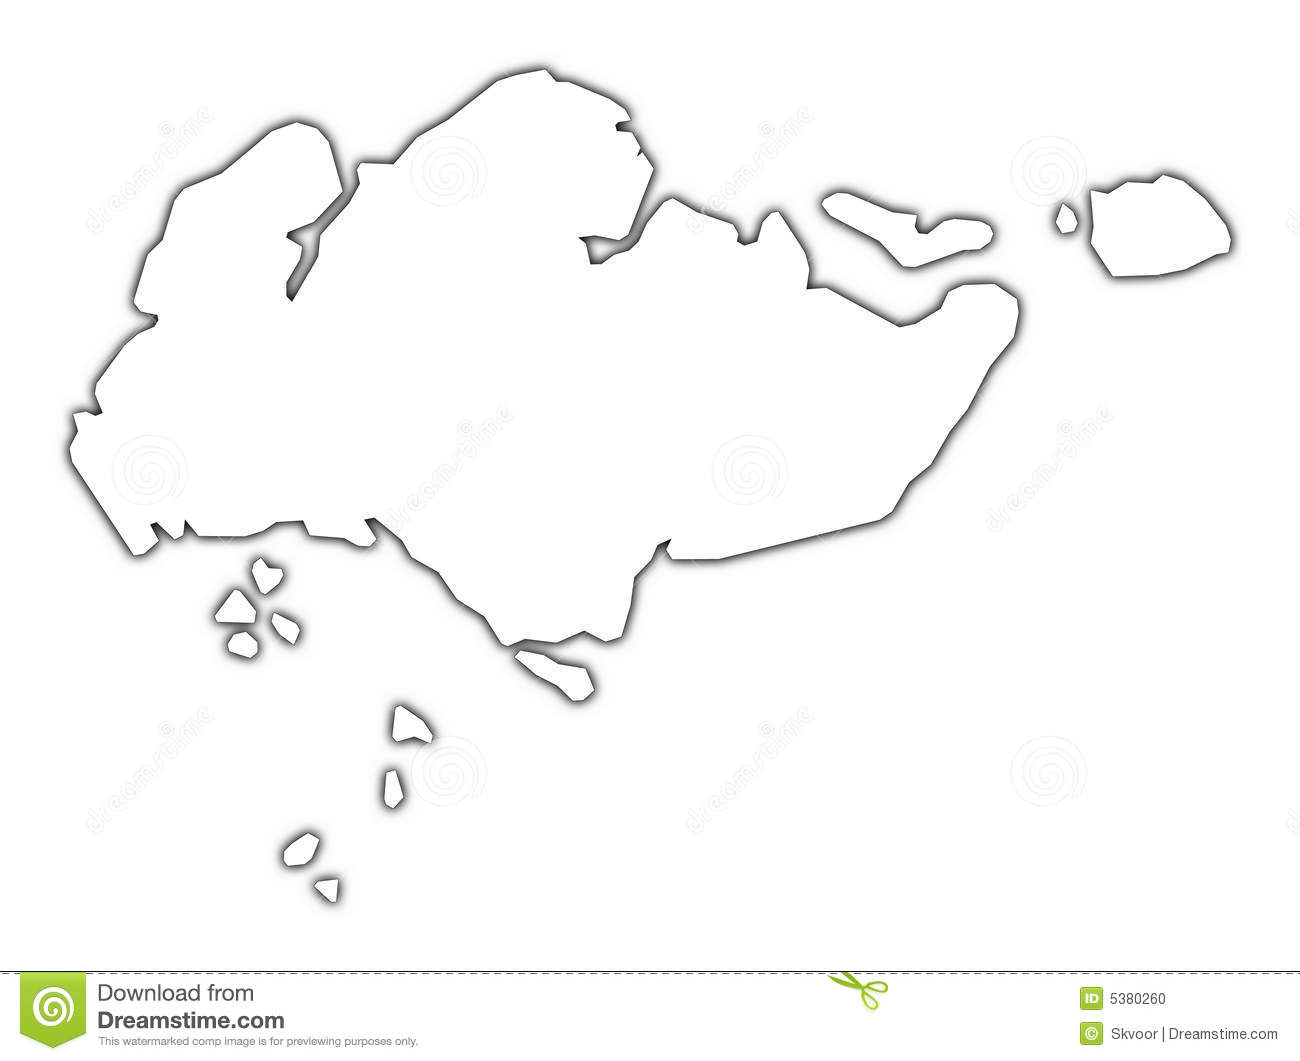 Stock Photo Hong Kong Map Shadow Image4083430 also Stock Image Mali Outline Map Image5445541 as well Images Stock Carte D Ensemble De L Alg C3 A9rie Avec L Ombre Image4211434 in addition File Tethys map June 2008 PIA08416 moon only besides Schmidt. on map projection